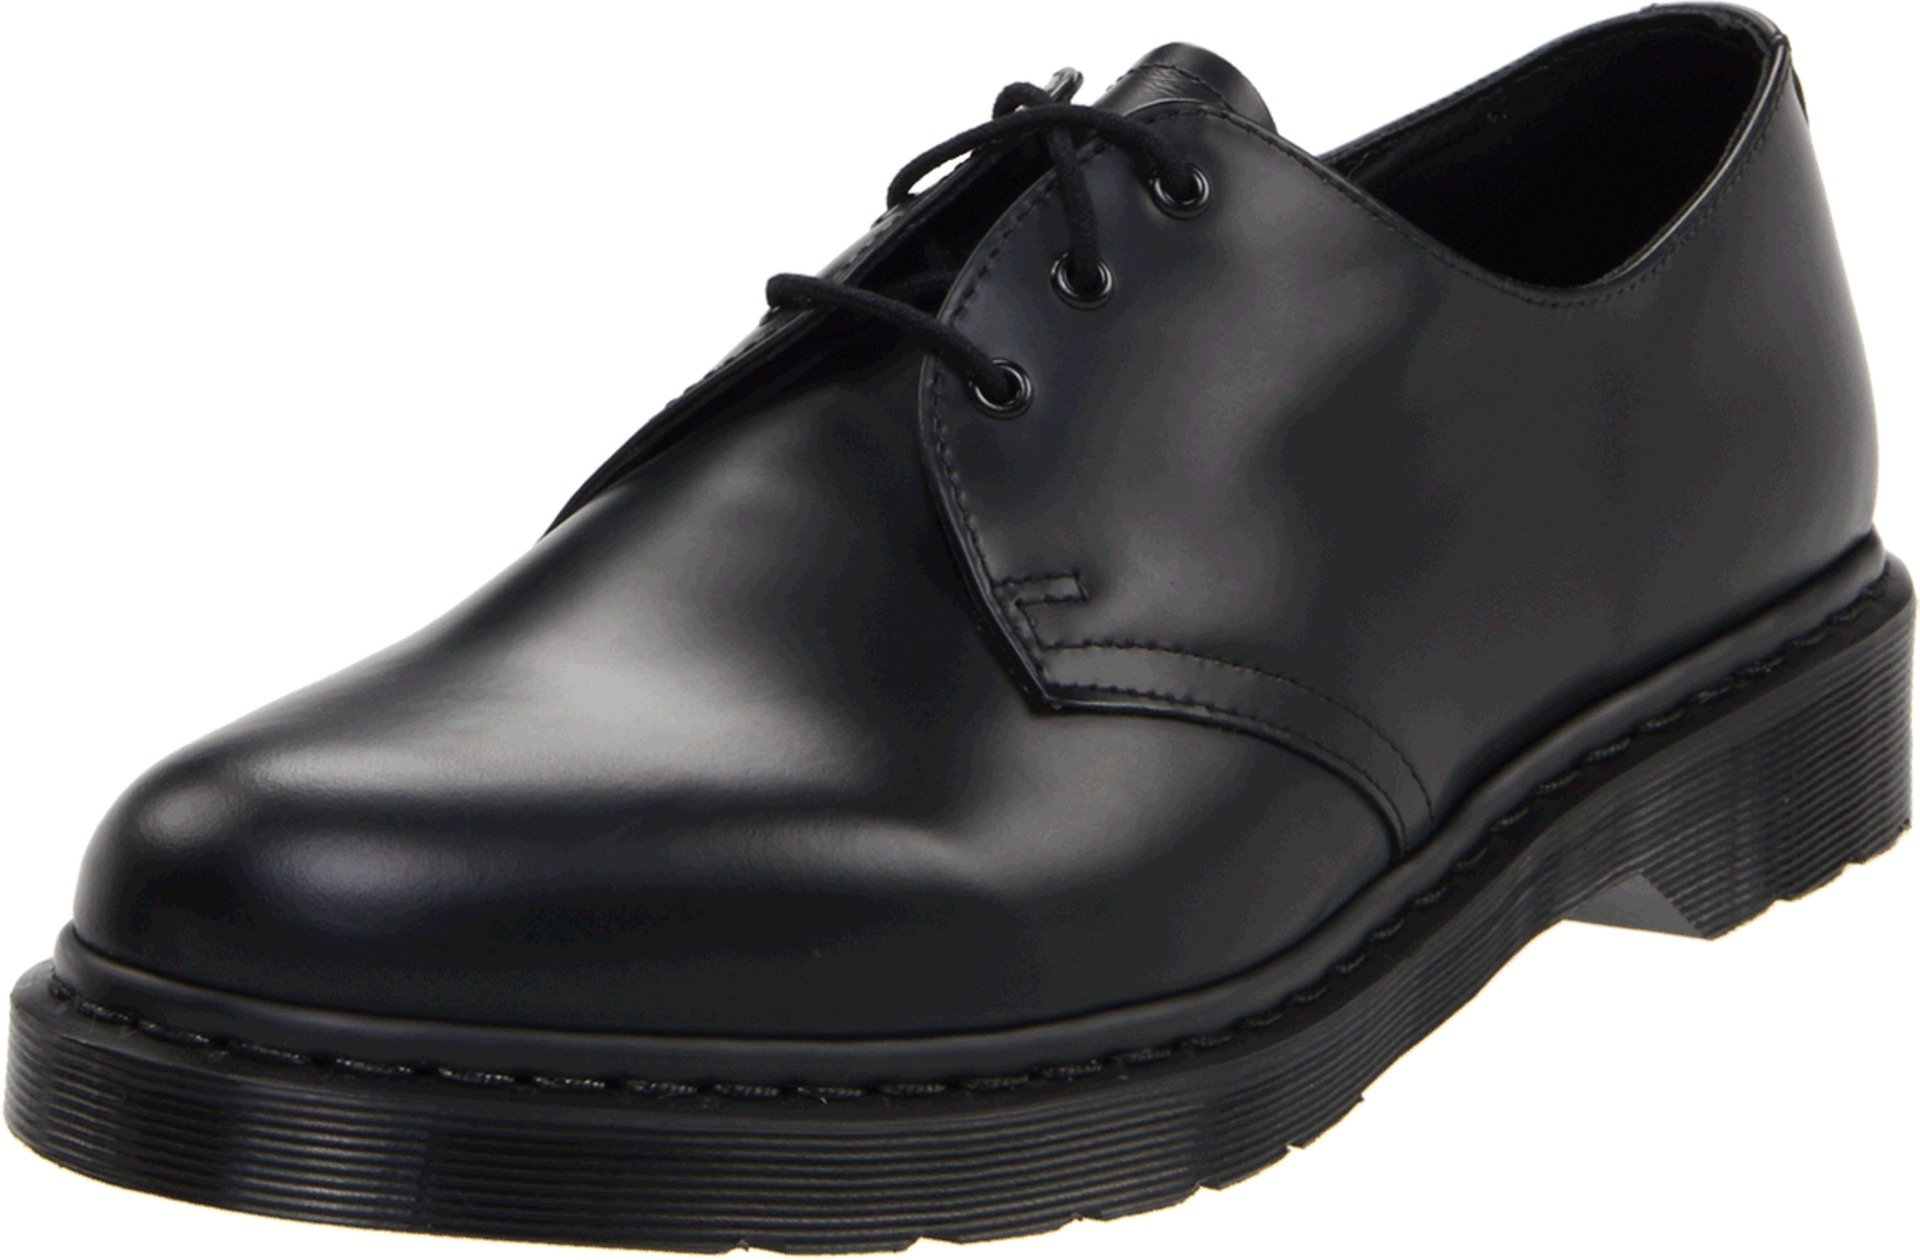 Dr. Martens 1461 Shoe,Black Smooth,8 UK/9 M US